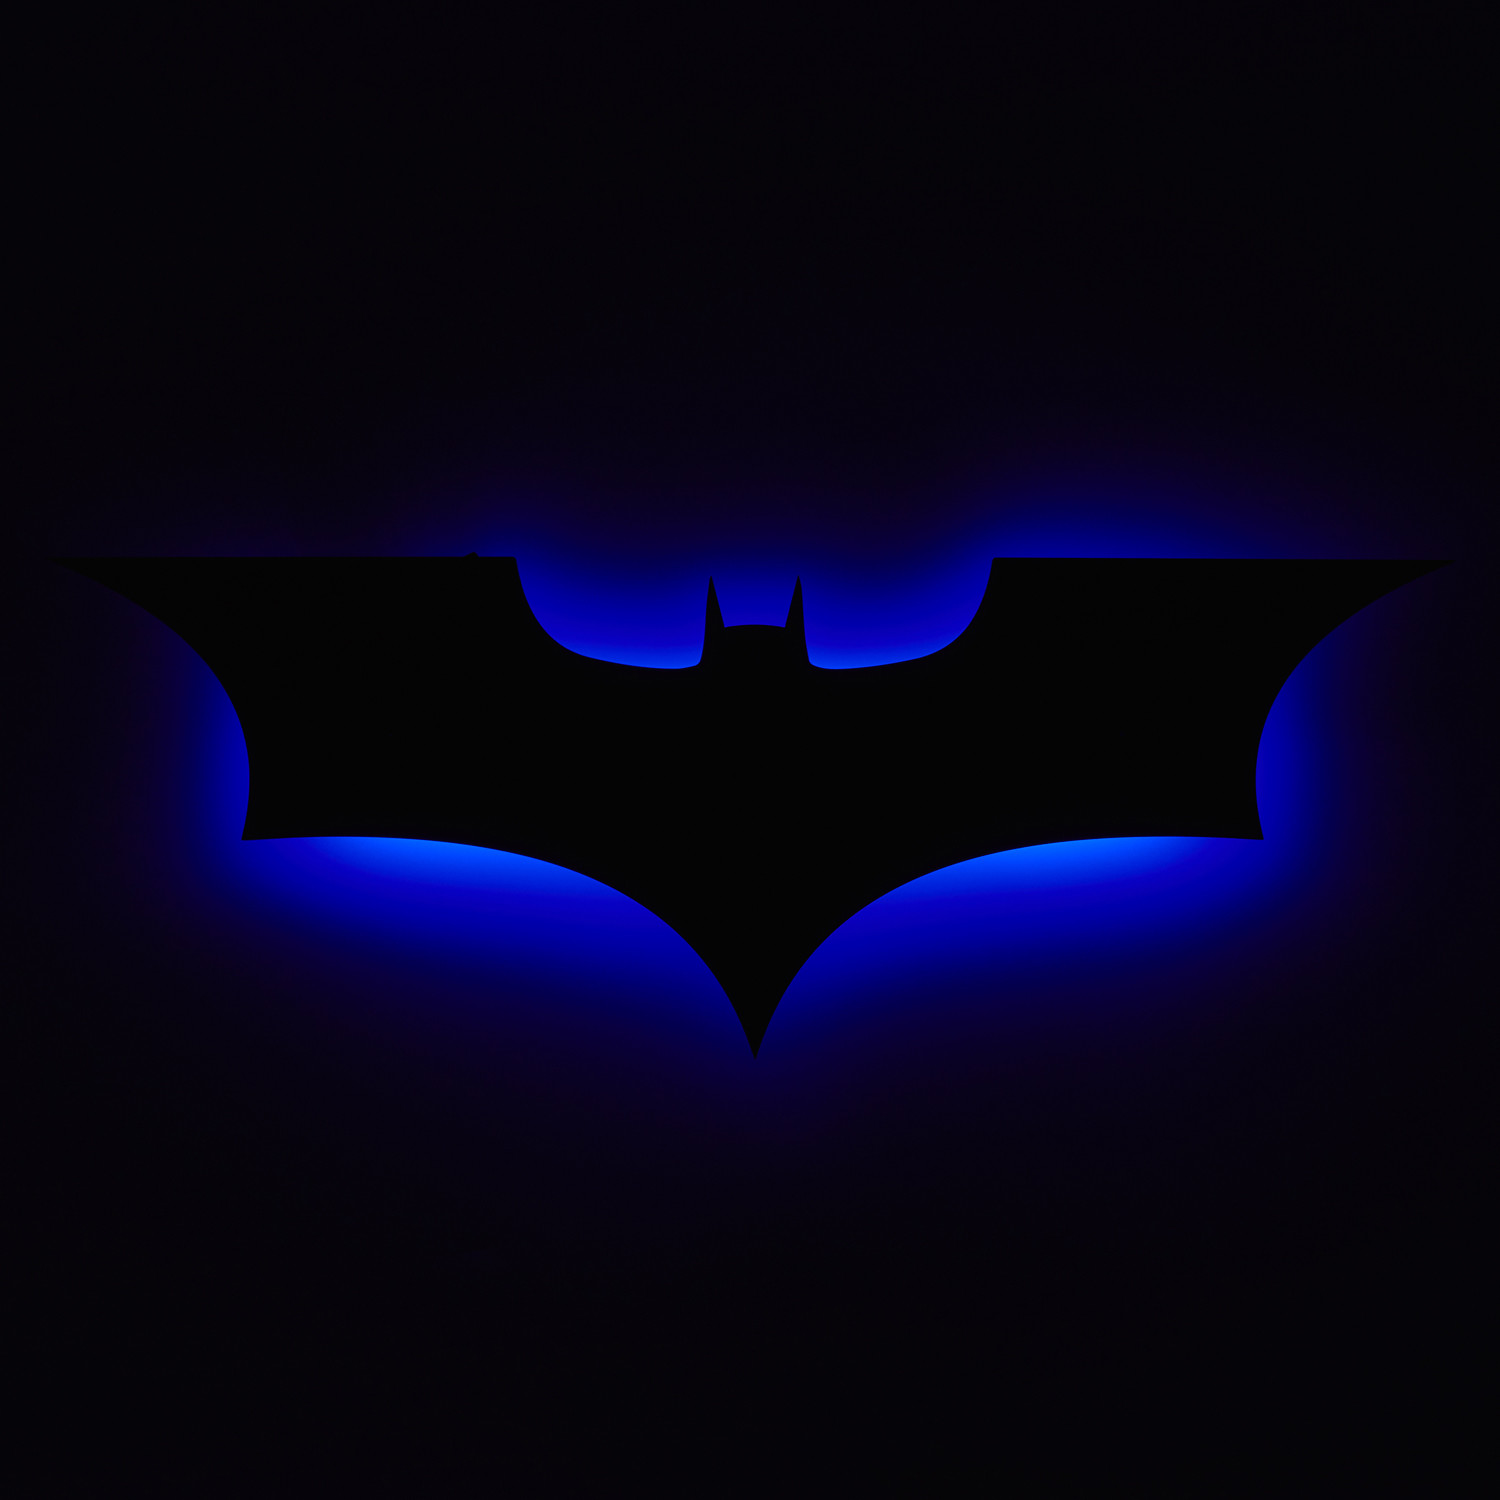 Dark Knight Logo Blue Floating Metal Wall Art Led Backlit 20 W X 7 H X 1 D Super Metals Touch Of Modern